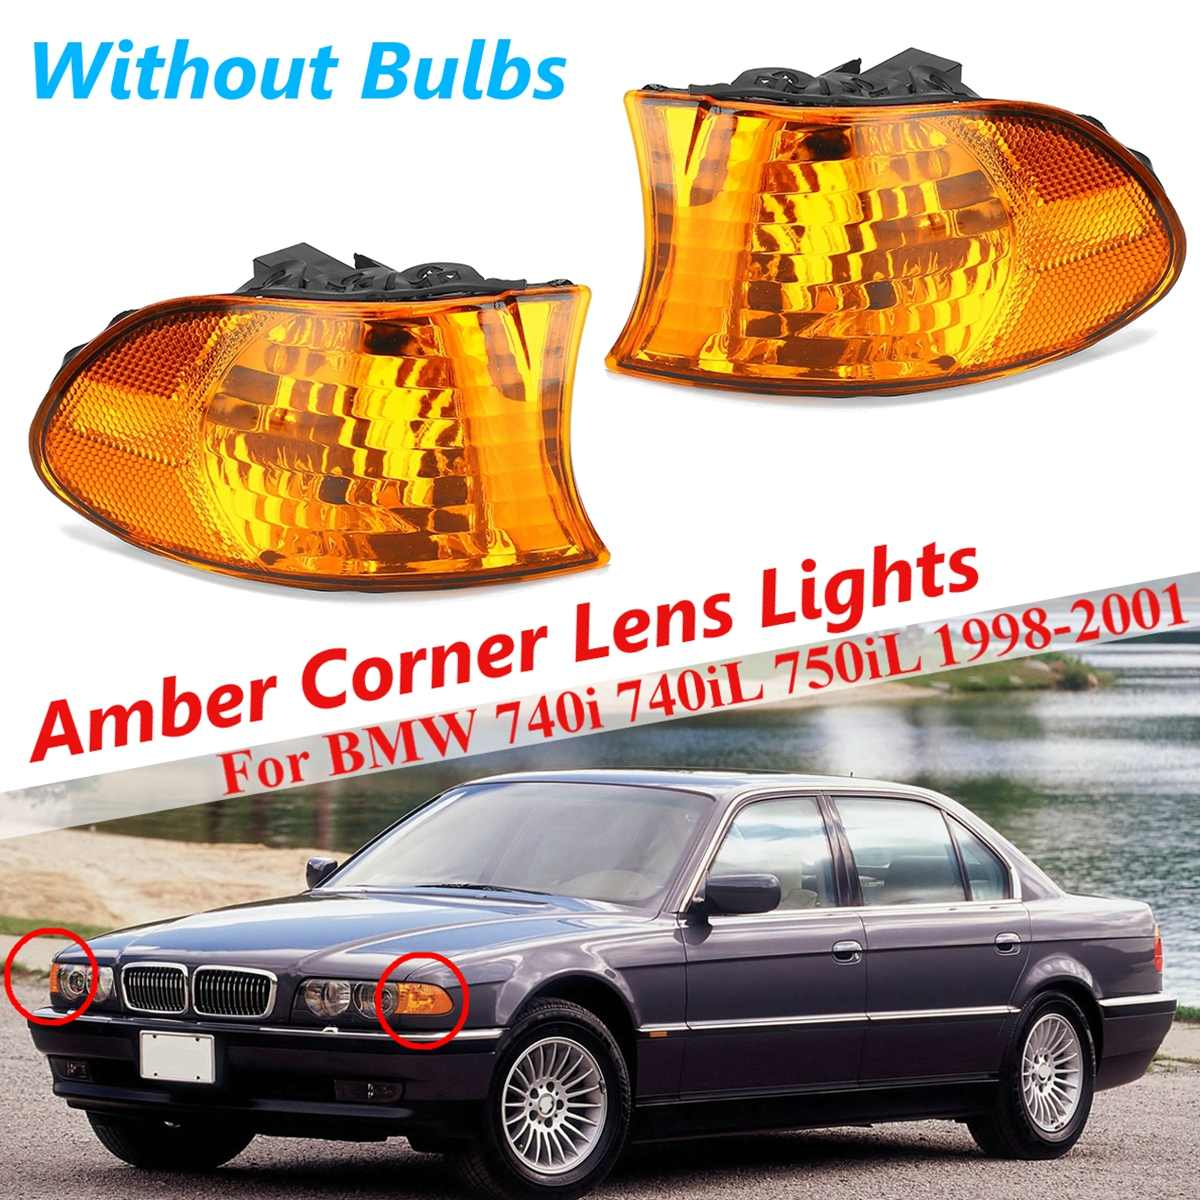 For BMW E38 7 Series 740i 740iL 750iL 1 Pair Car Front Amber Coner Signal Lamp Fog Light Drl Headlights Styling Car Accessories